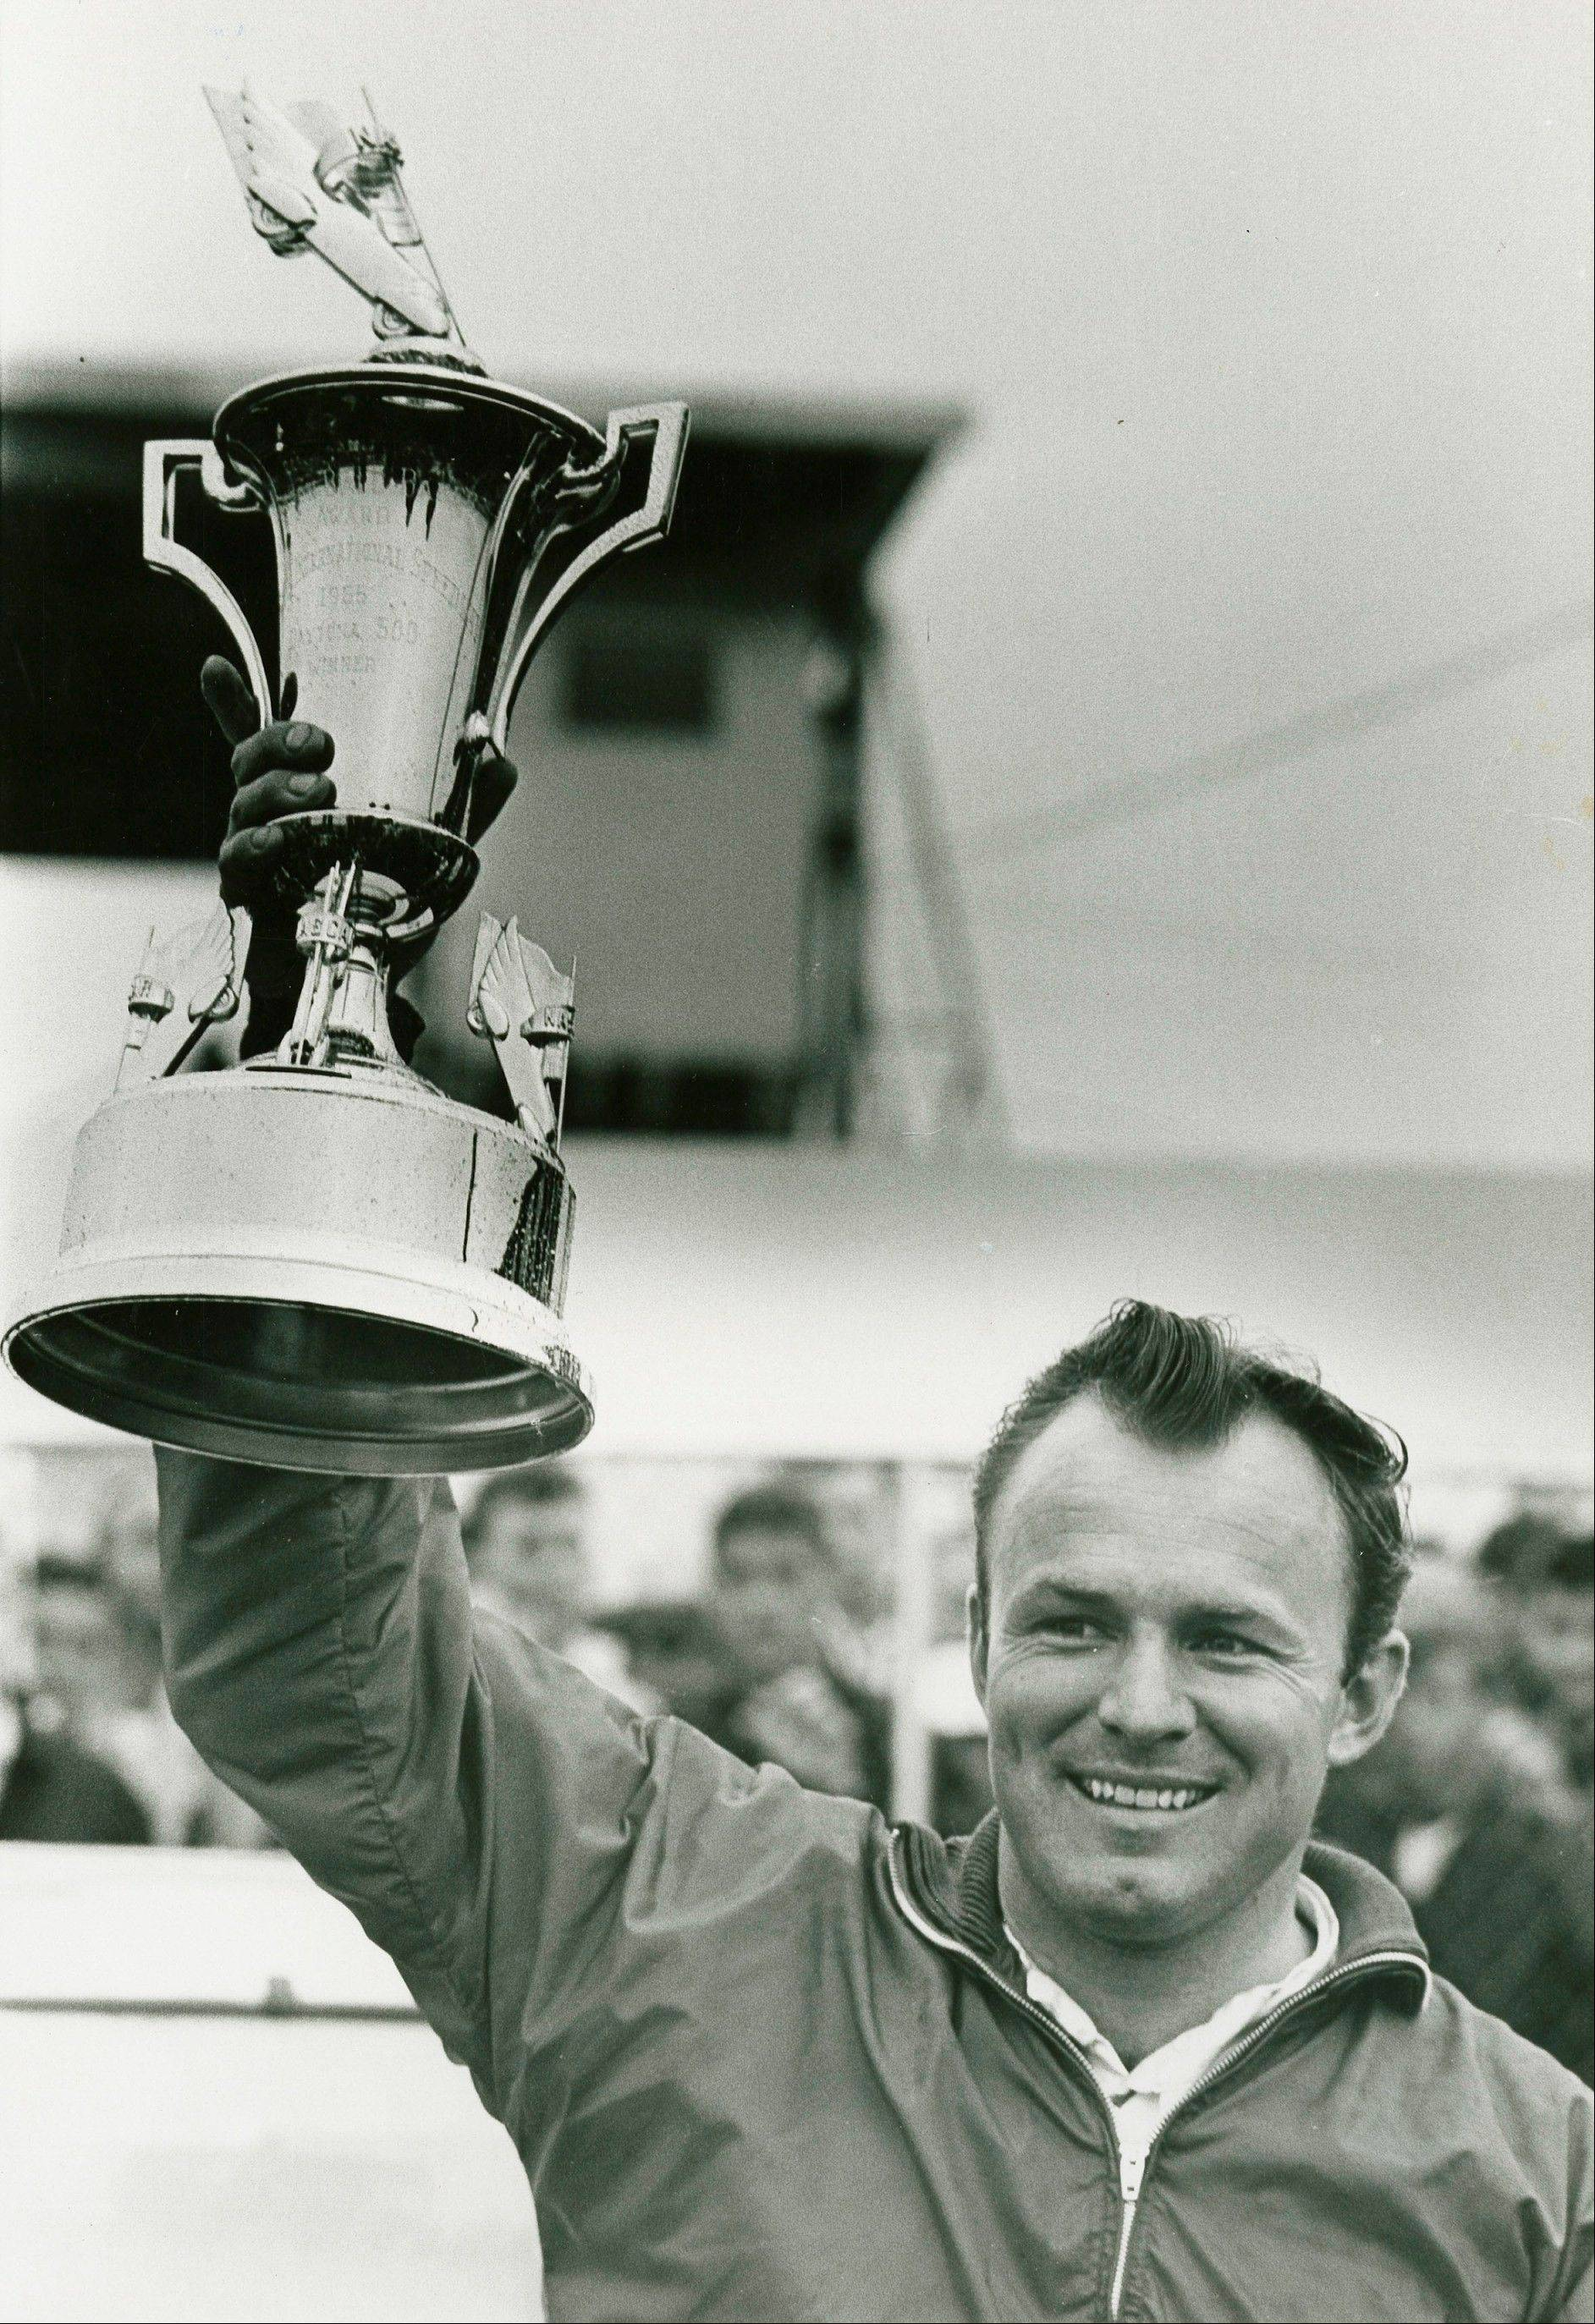 """On the Road to Glory,"" an exhibit about the life of professional driver and racer Fred Lorenzen, is ongoing at the Elmhurst Historical Museum."